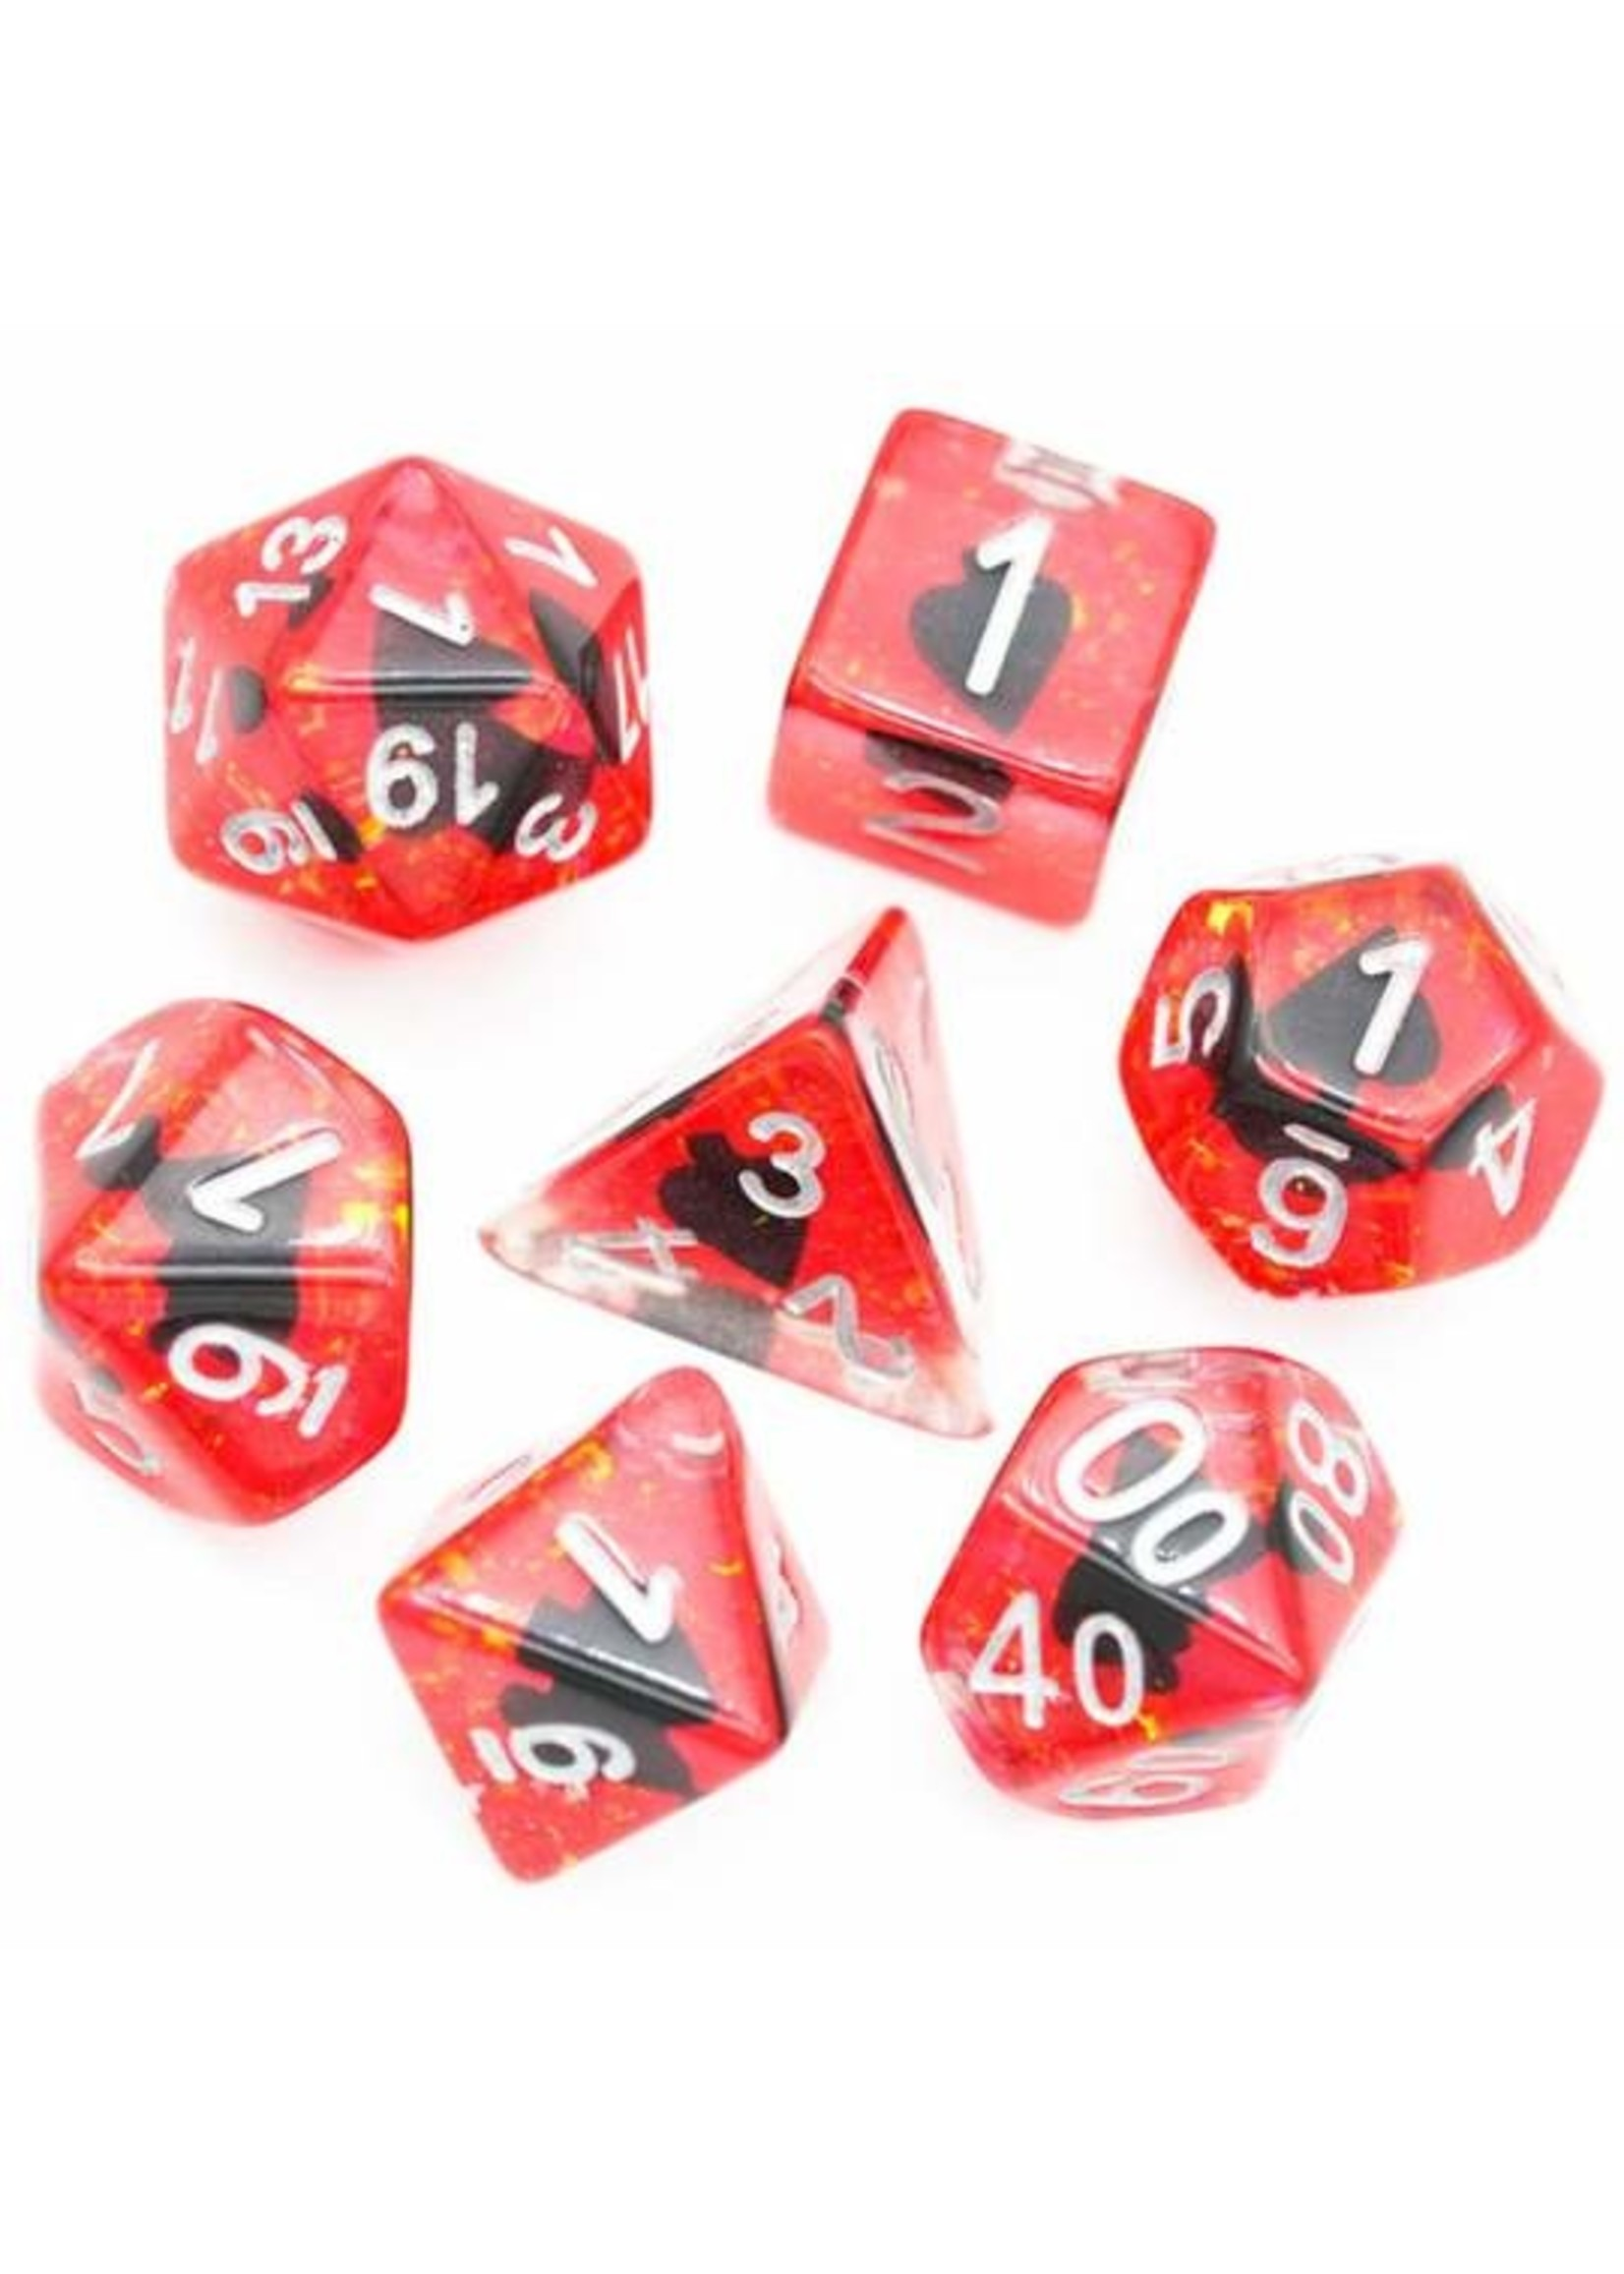 Suit of Dice: Spades RPG Dice Set